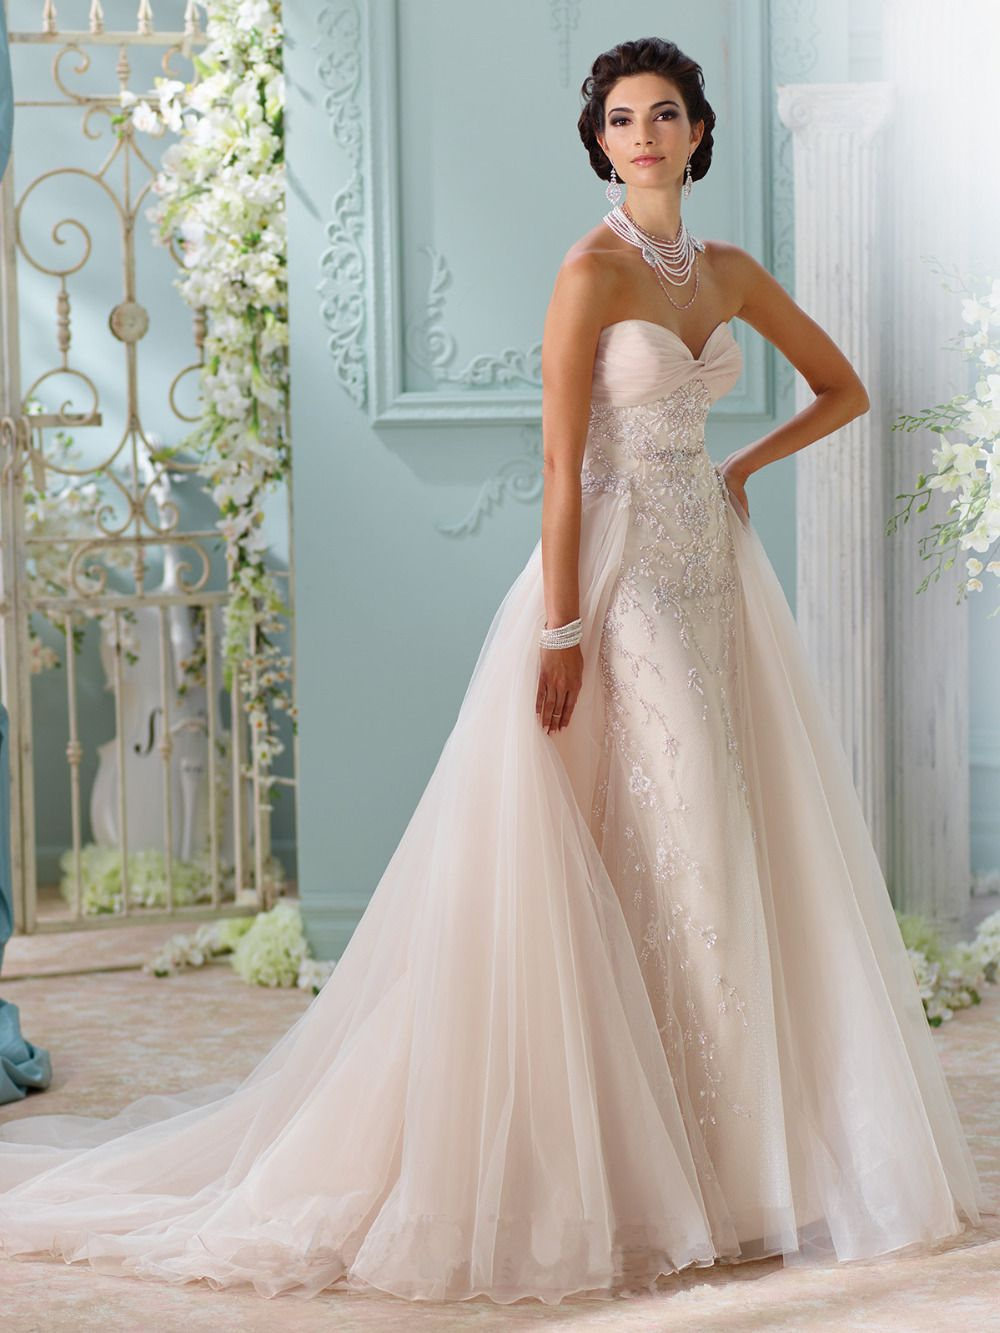 Find More Wedding Dresses Information about Formal Sweetheart ...